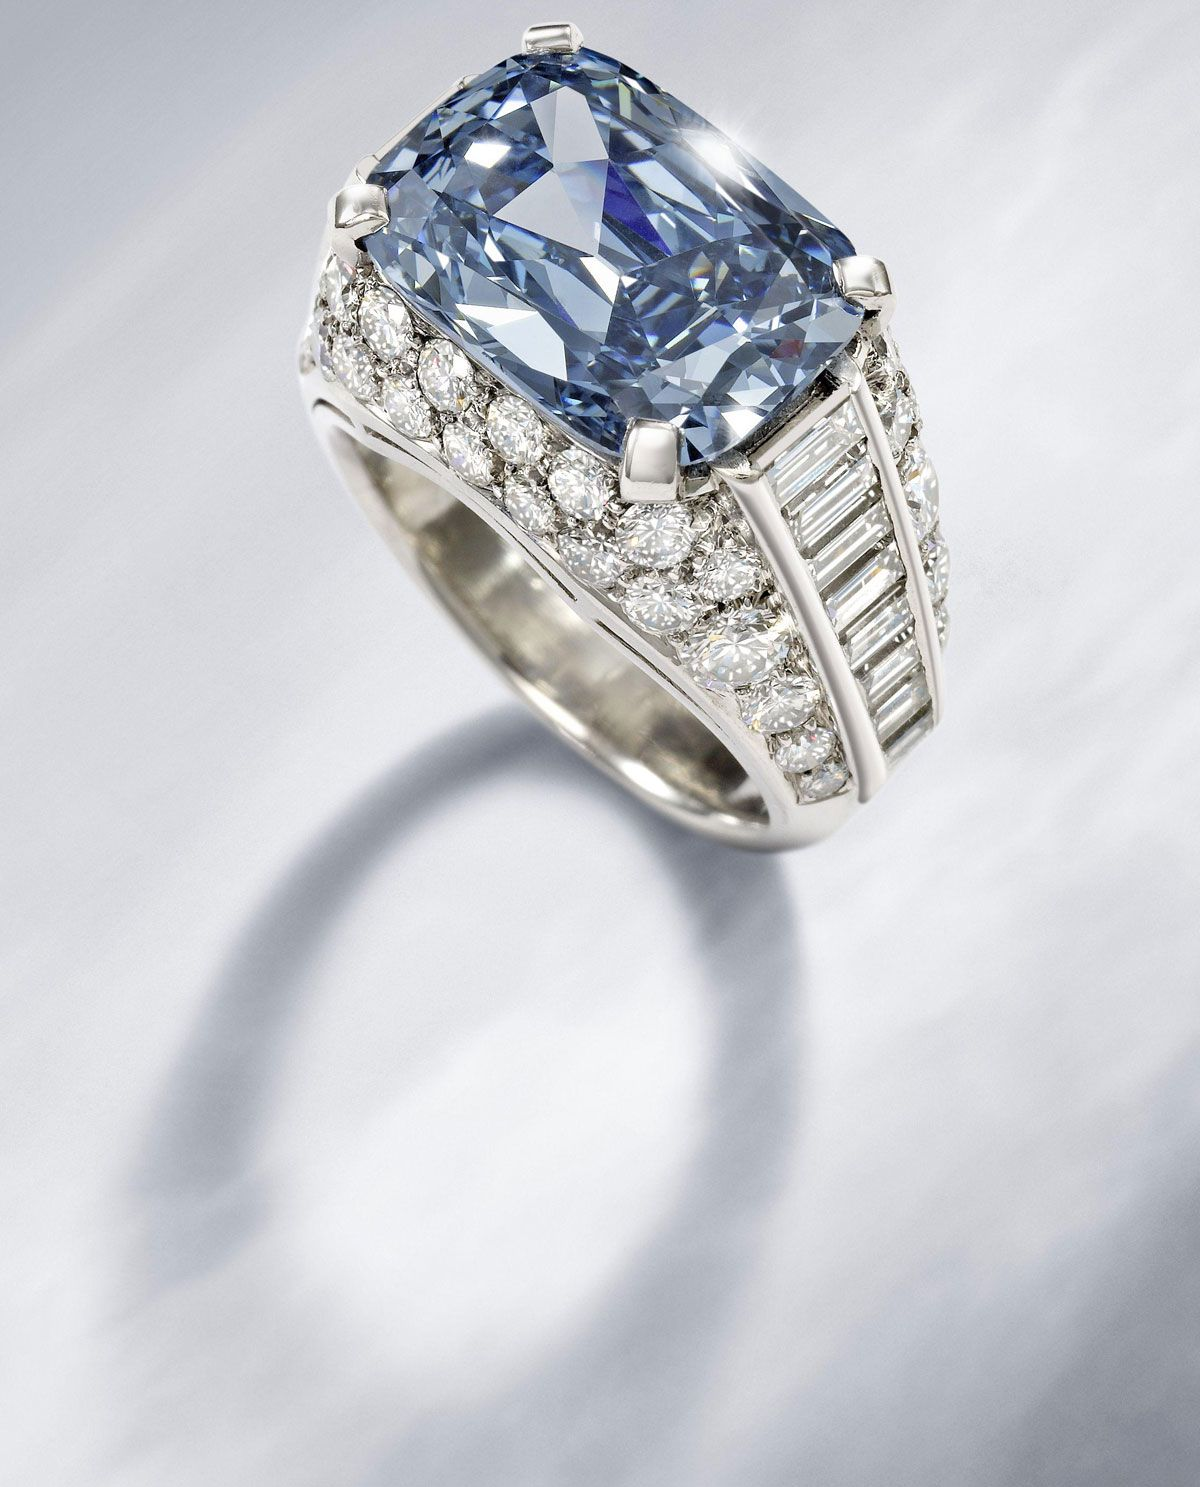 World's Most Expensive Engagement Ring, featuring a 5.2